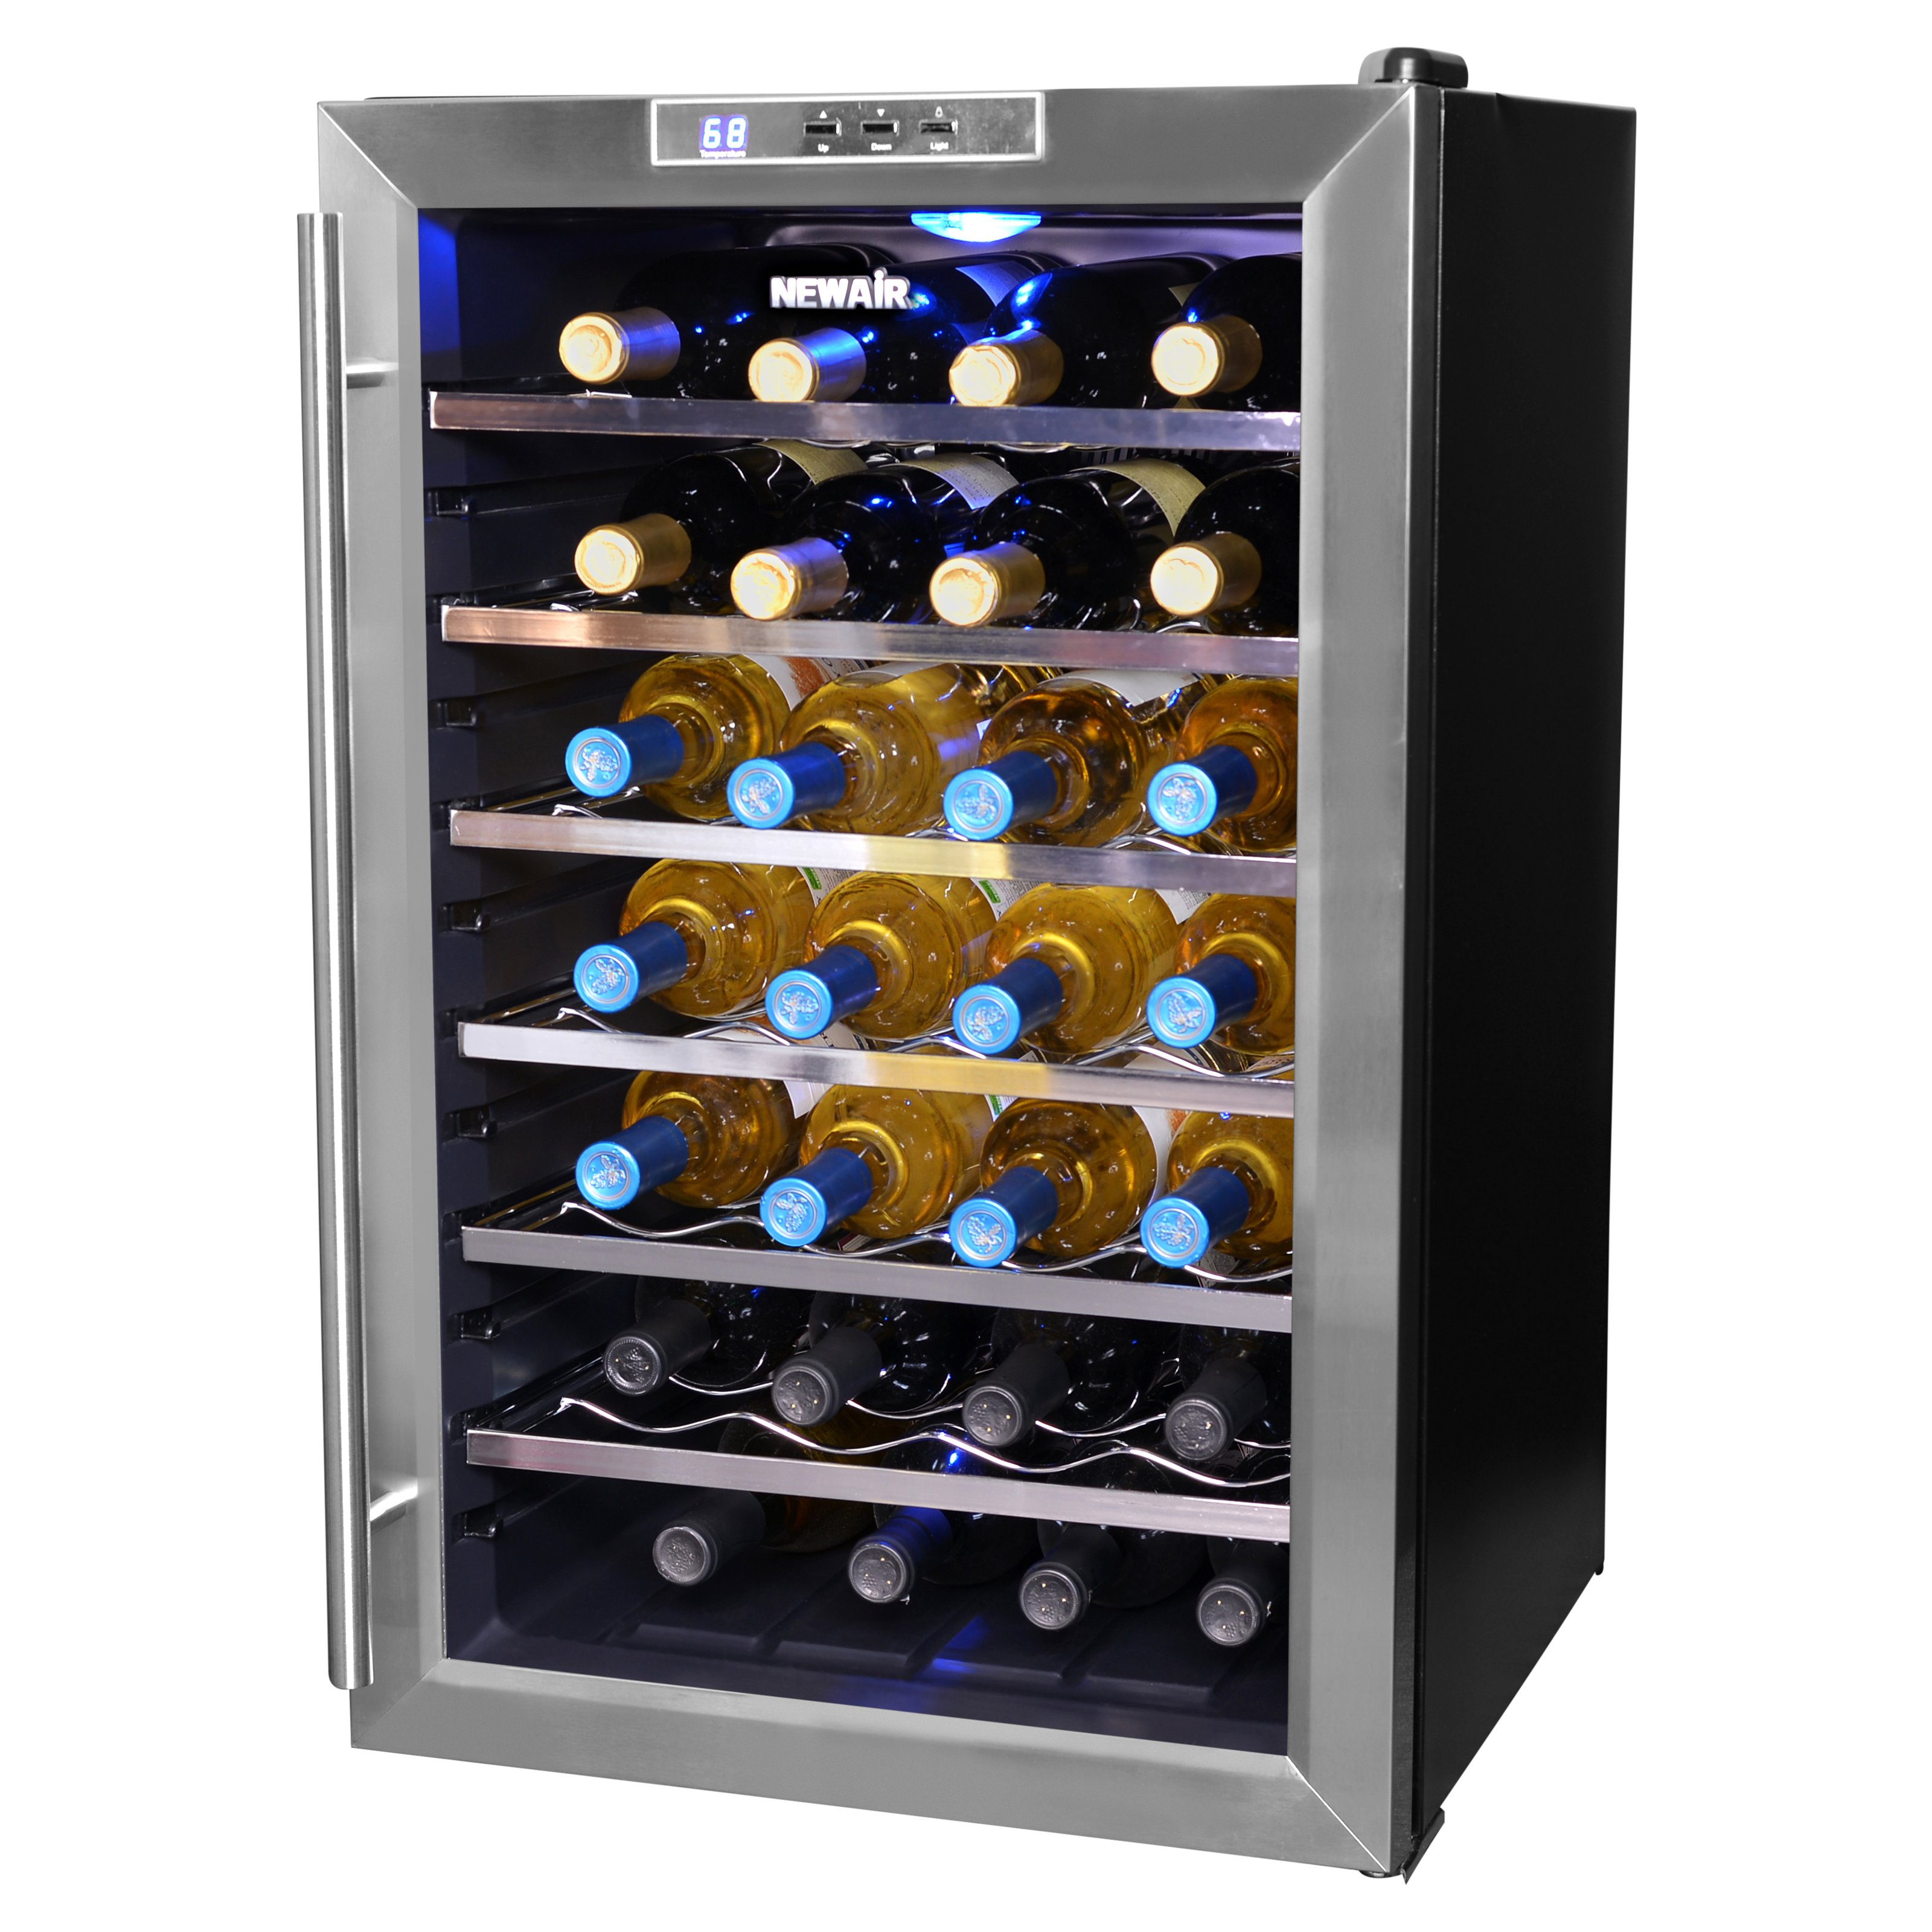 Newair Aw 281e 28 Bottle Thermoelectric Wine Refrigerator